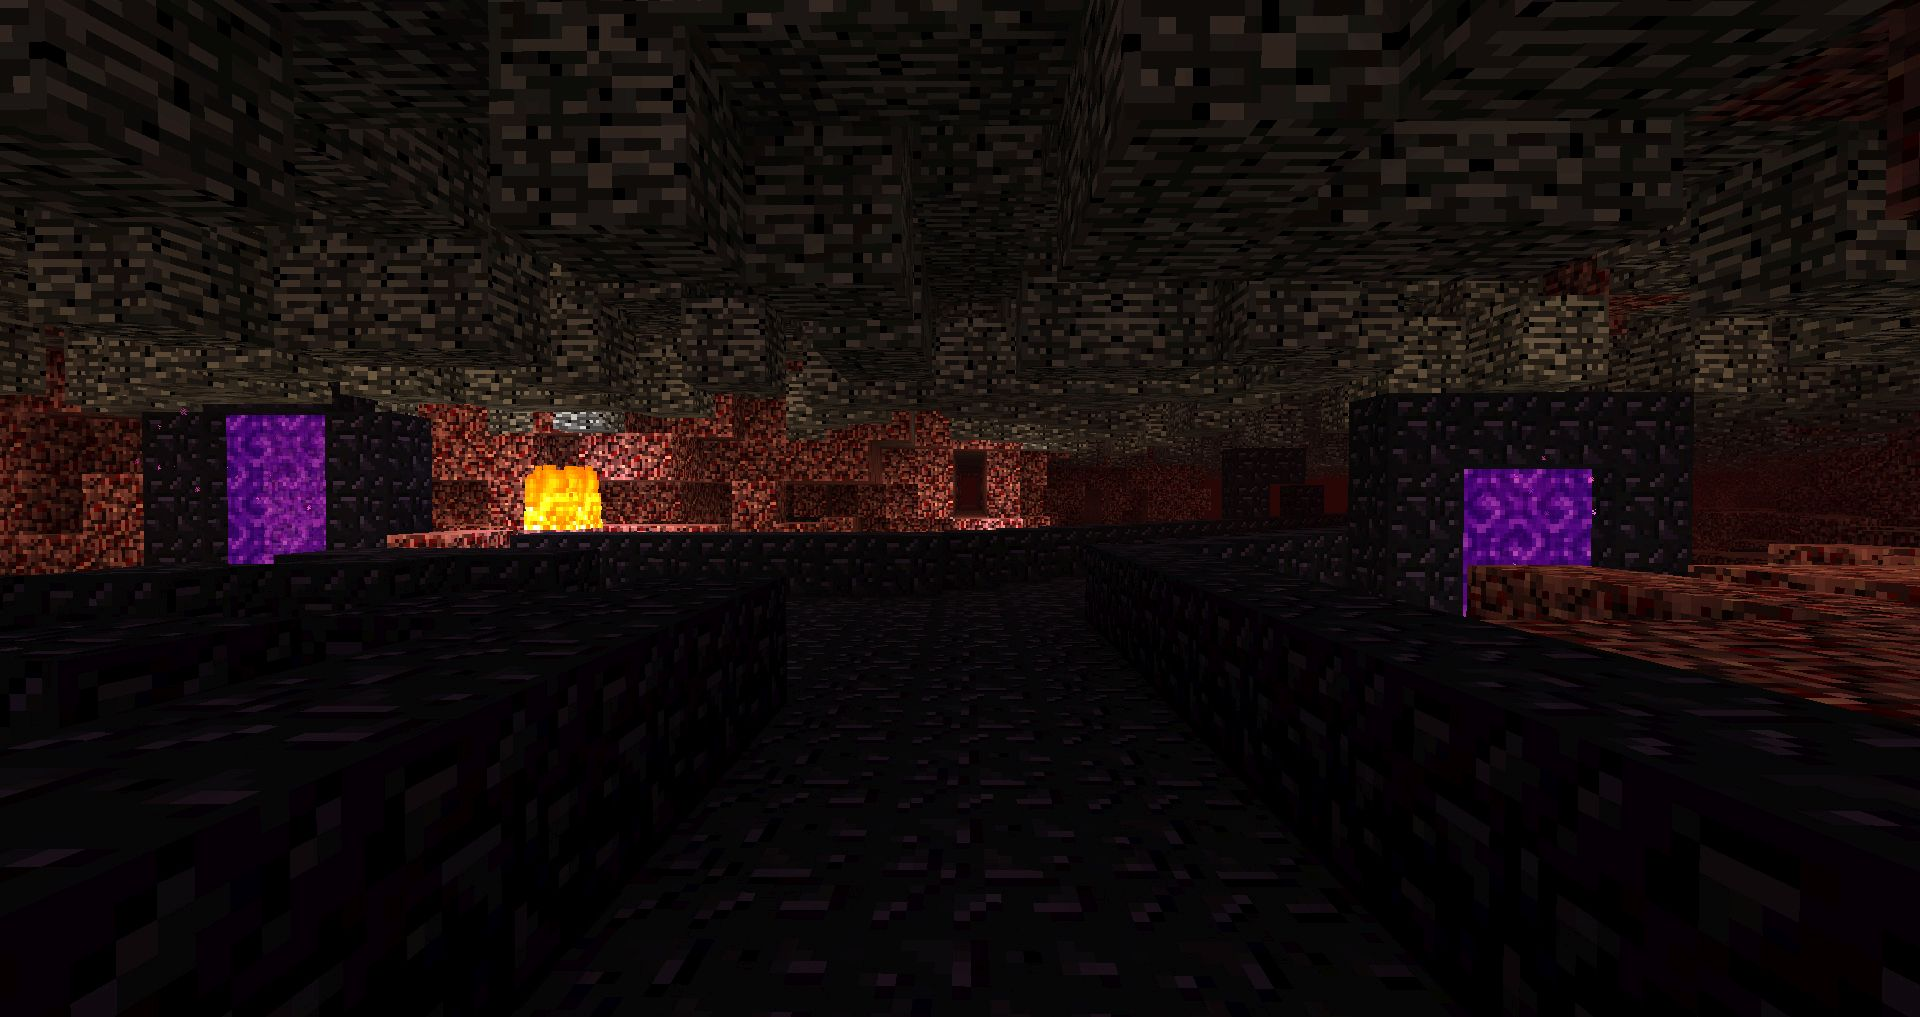 2b2t Map 2019